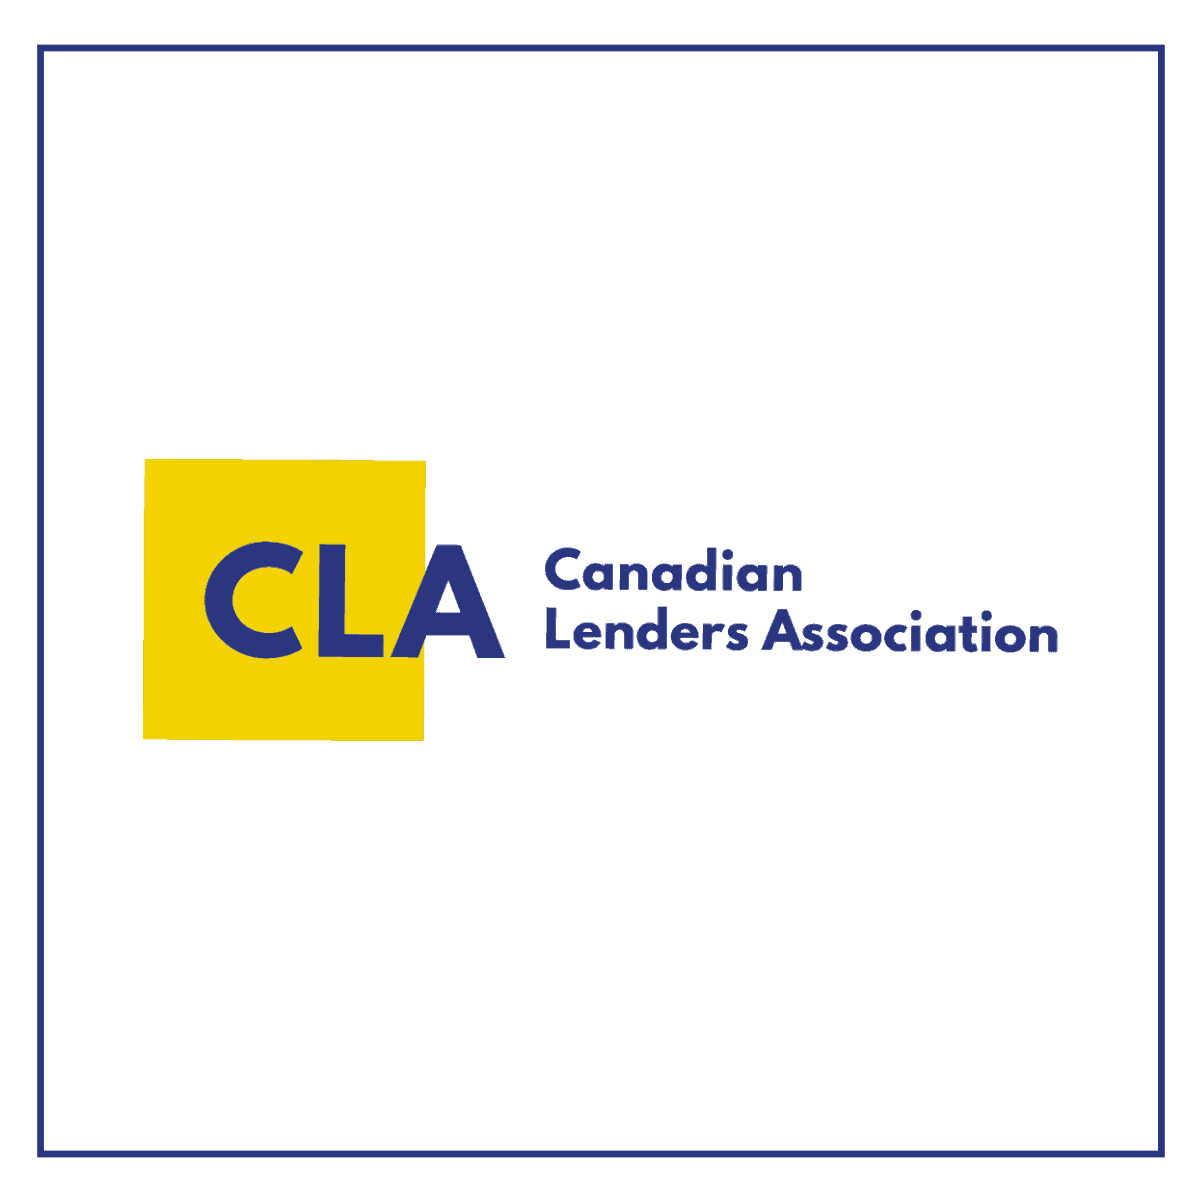 Canadian Lenders Association 2021 Leaders in Lending